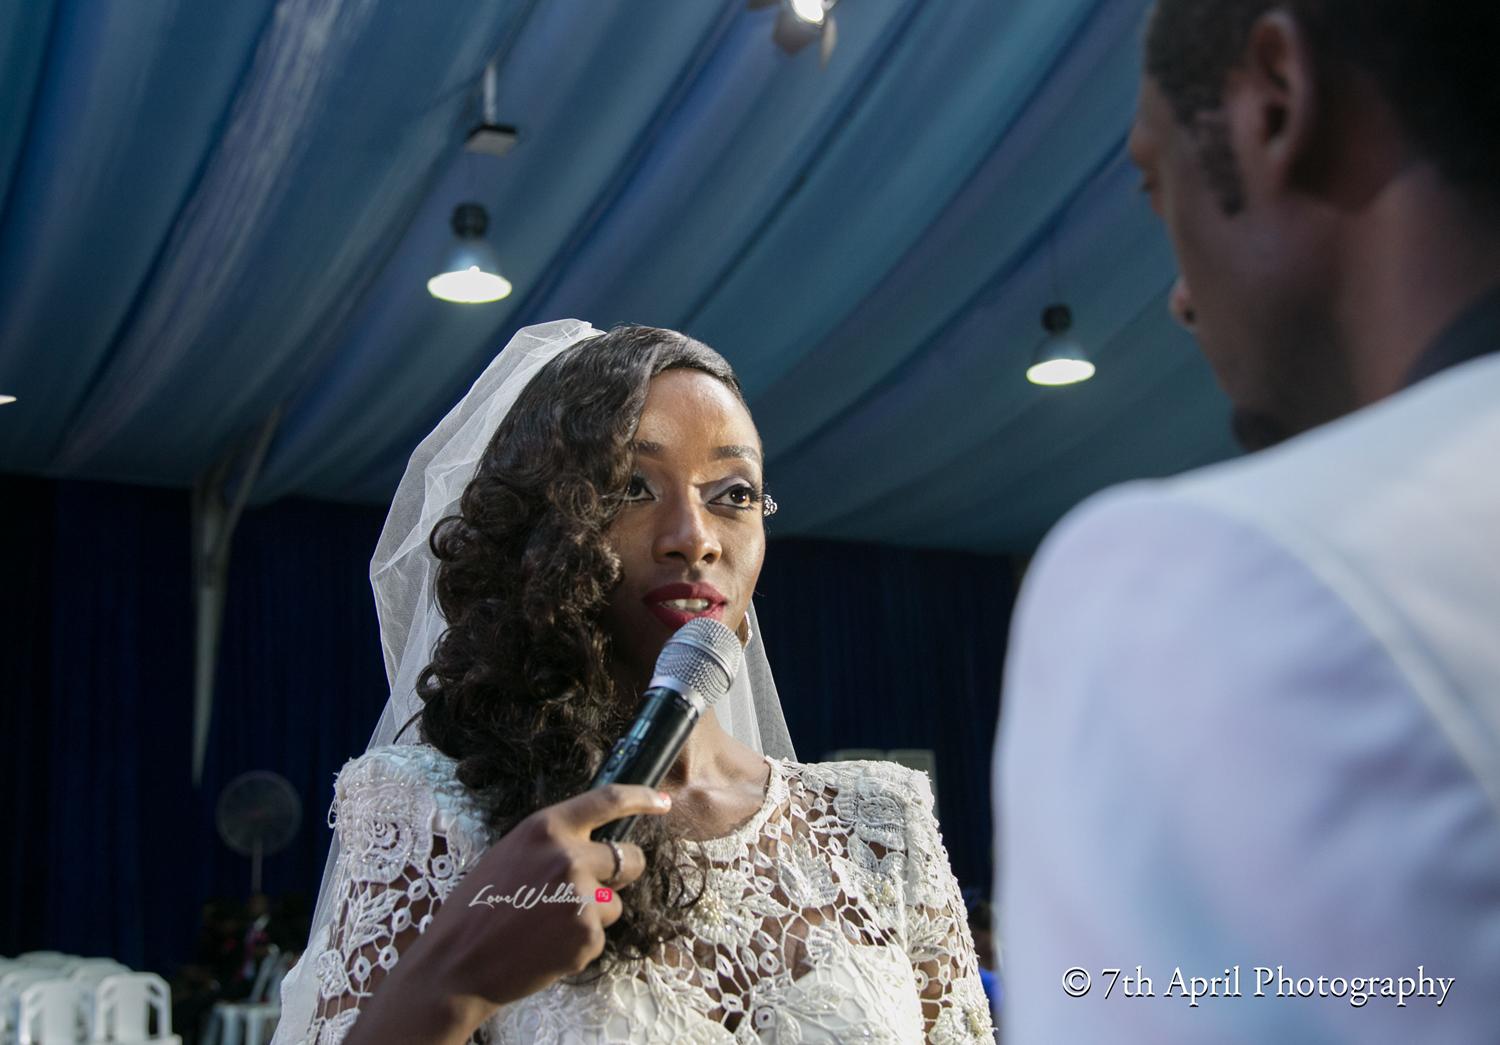 LoveweddingsNG Yvonne and Ivan 7th April Photography40